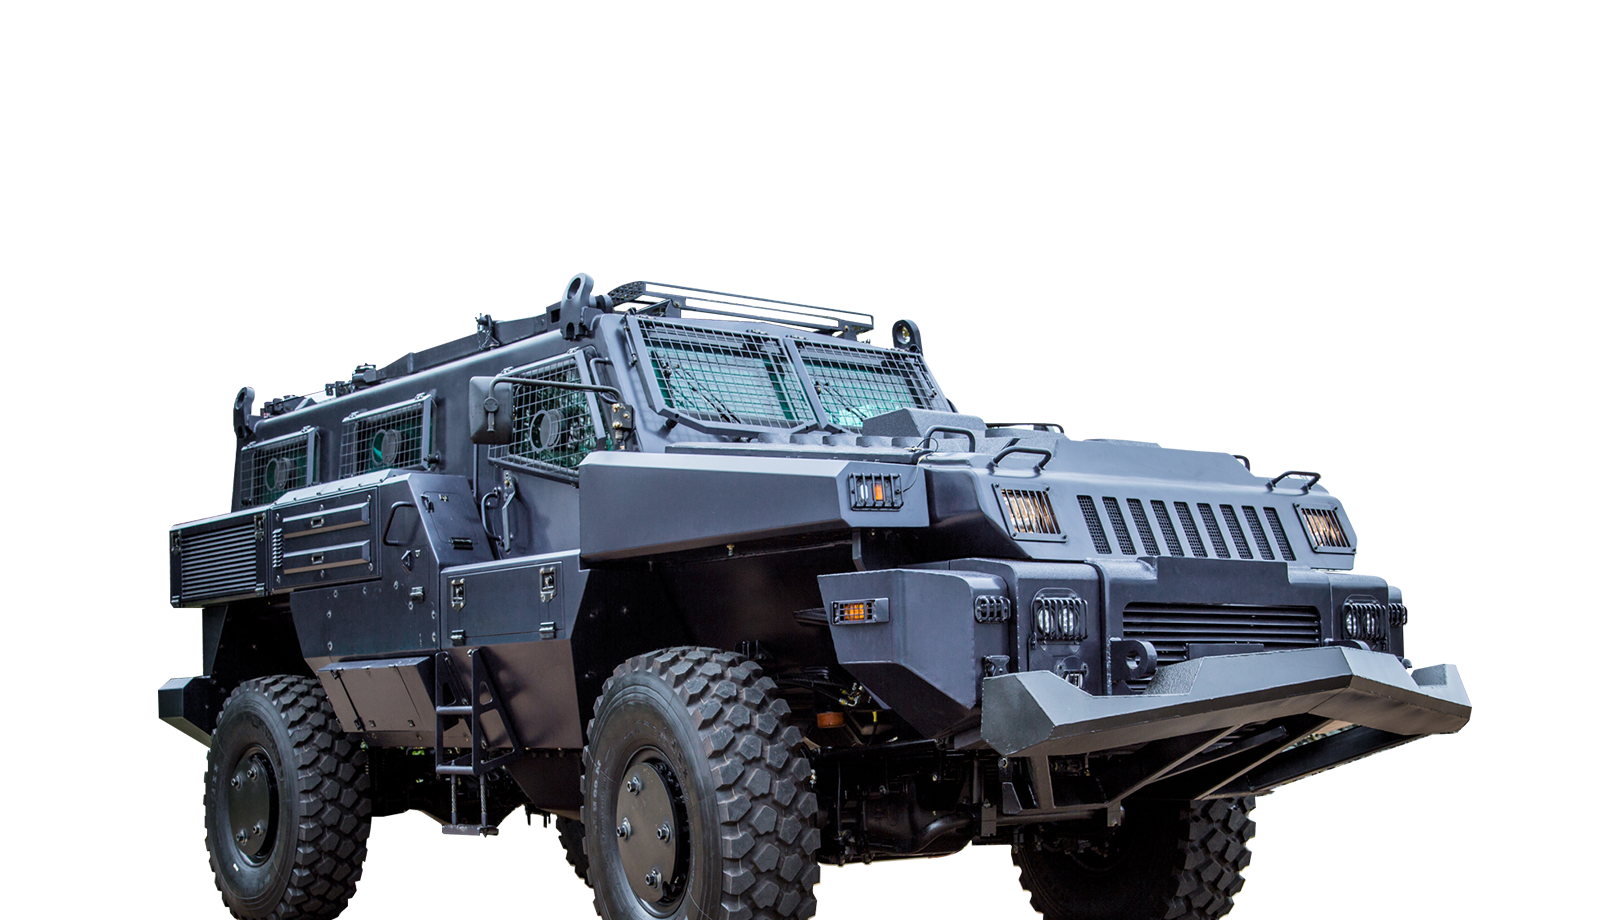 Chevy drawing military vehicle. Roger wolfgram rogerwolfgram on